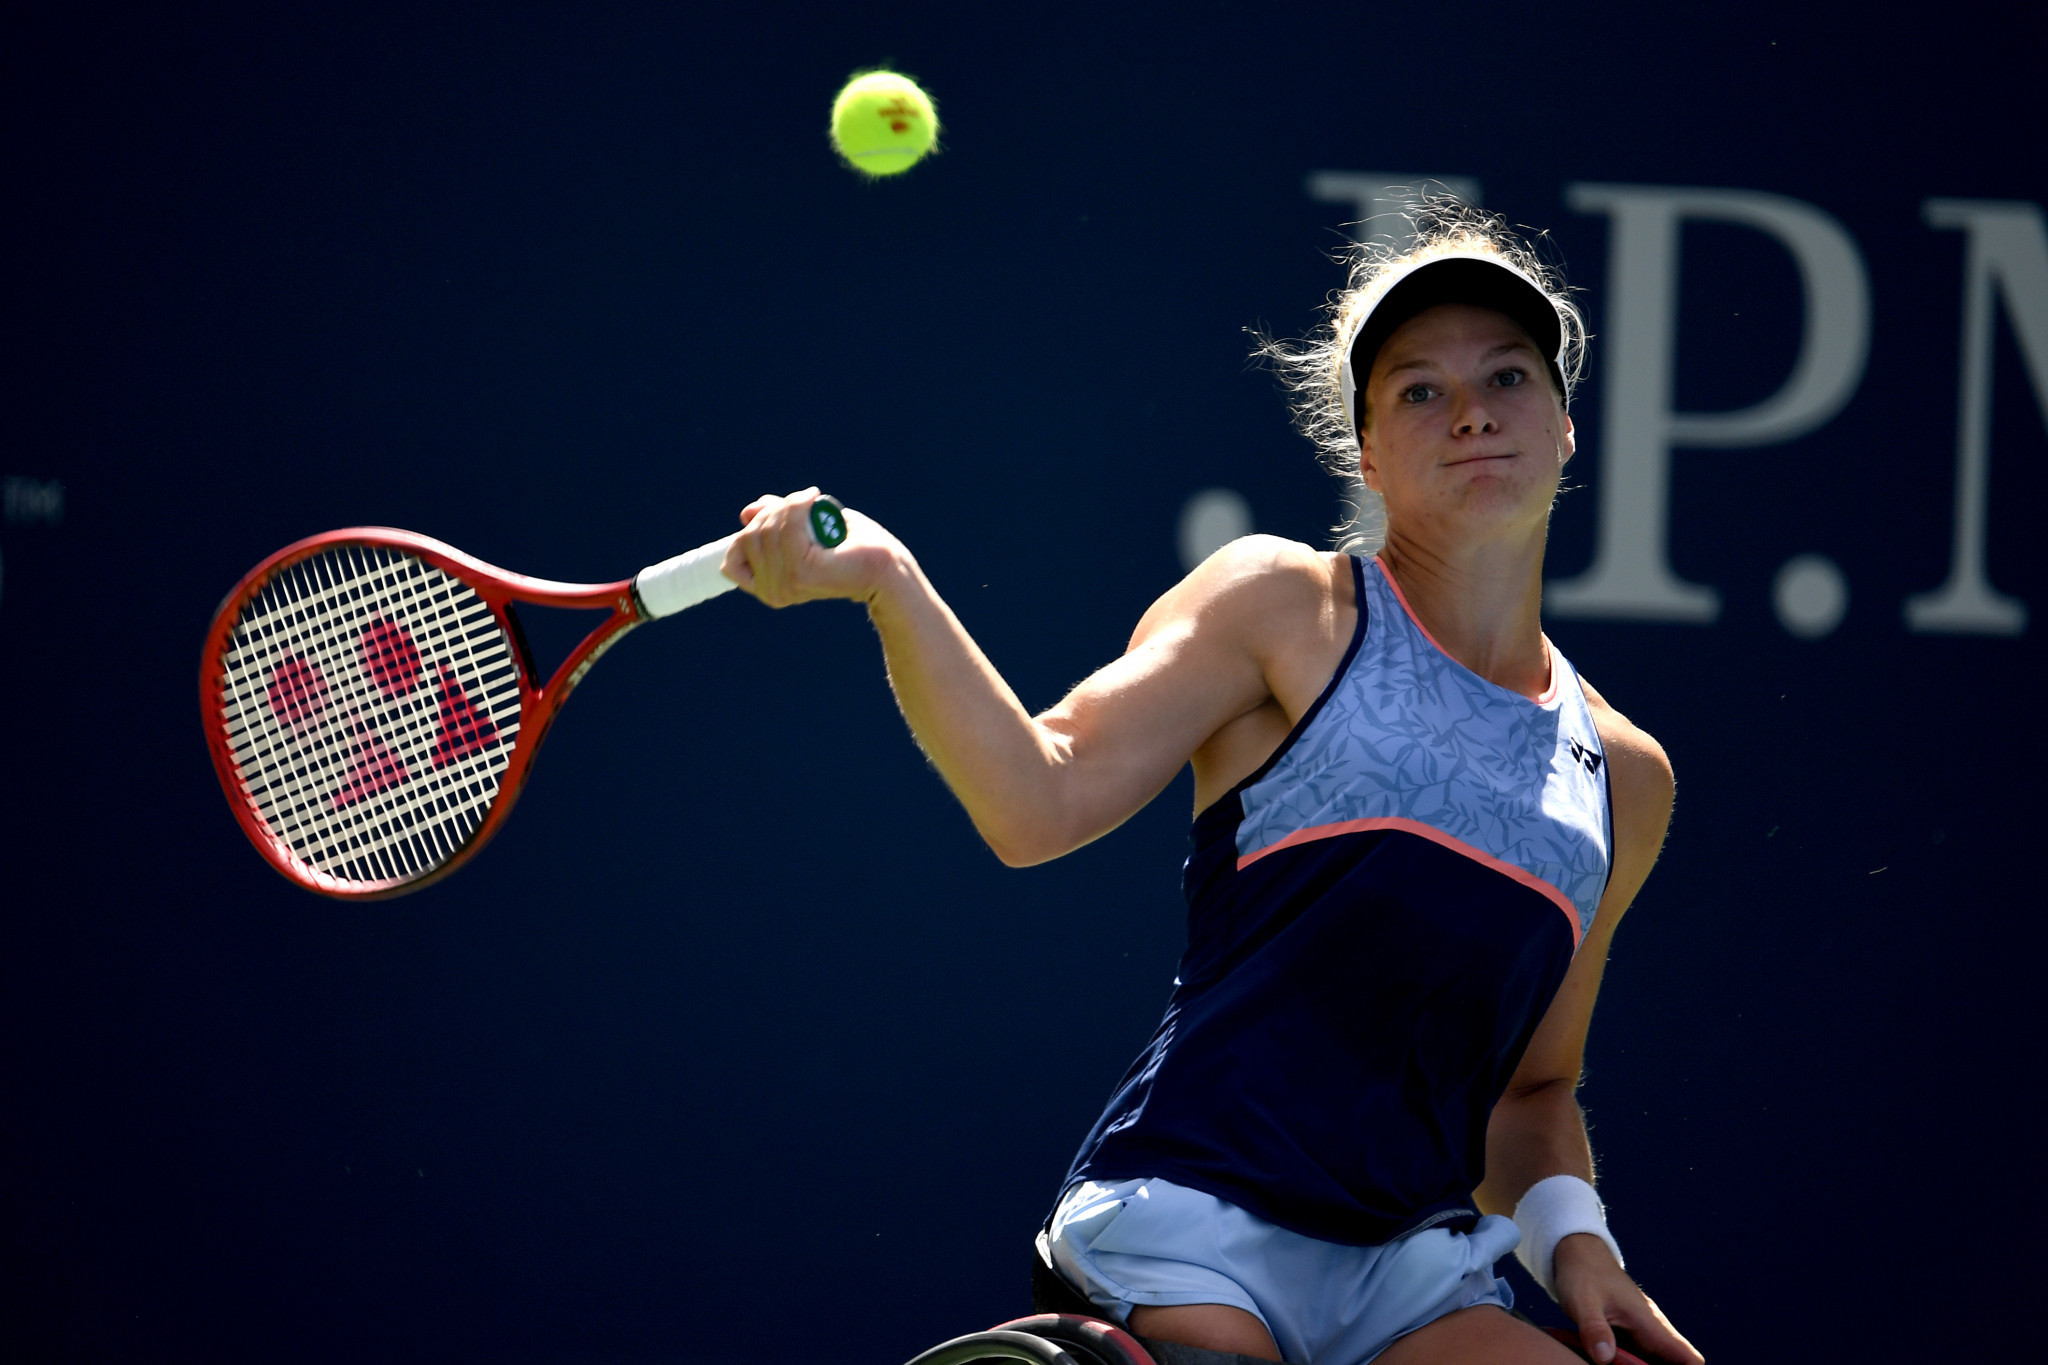 Dutchwoman Diede de Groot continued her successful year by reaching the NEC Wheelchair Singles Masters final ©Getty Images